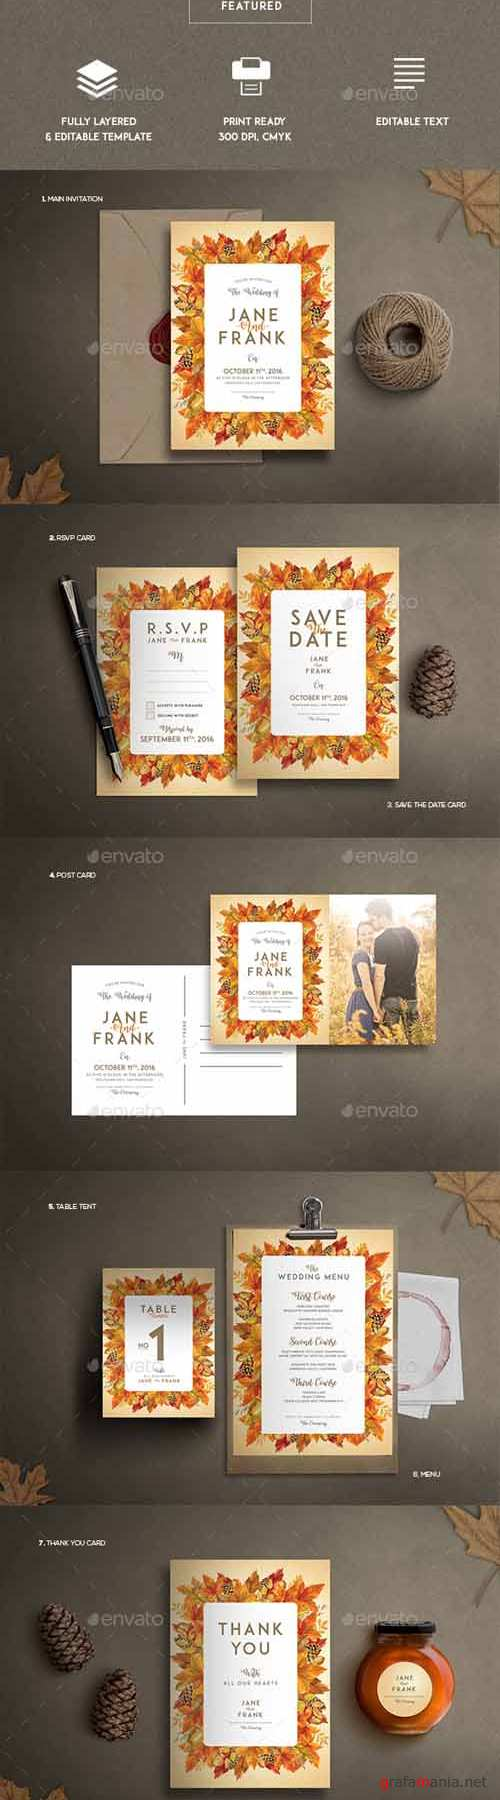 Wedding Invitation 17814203